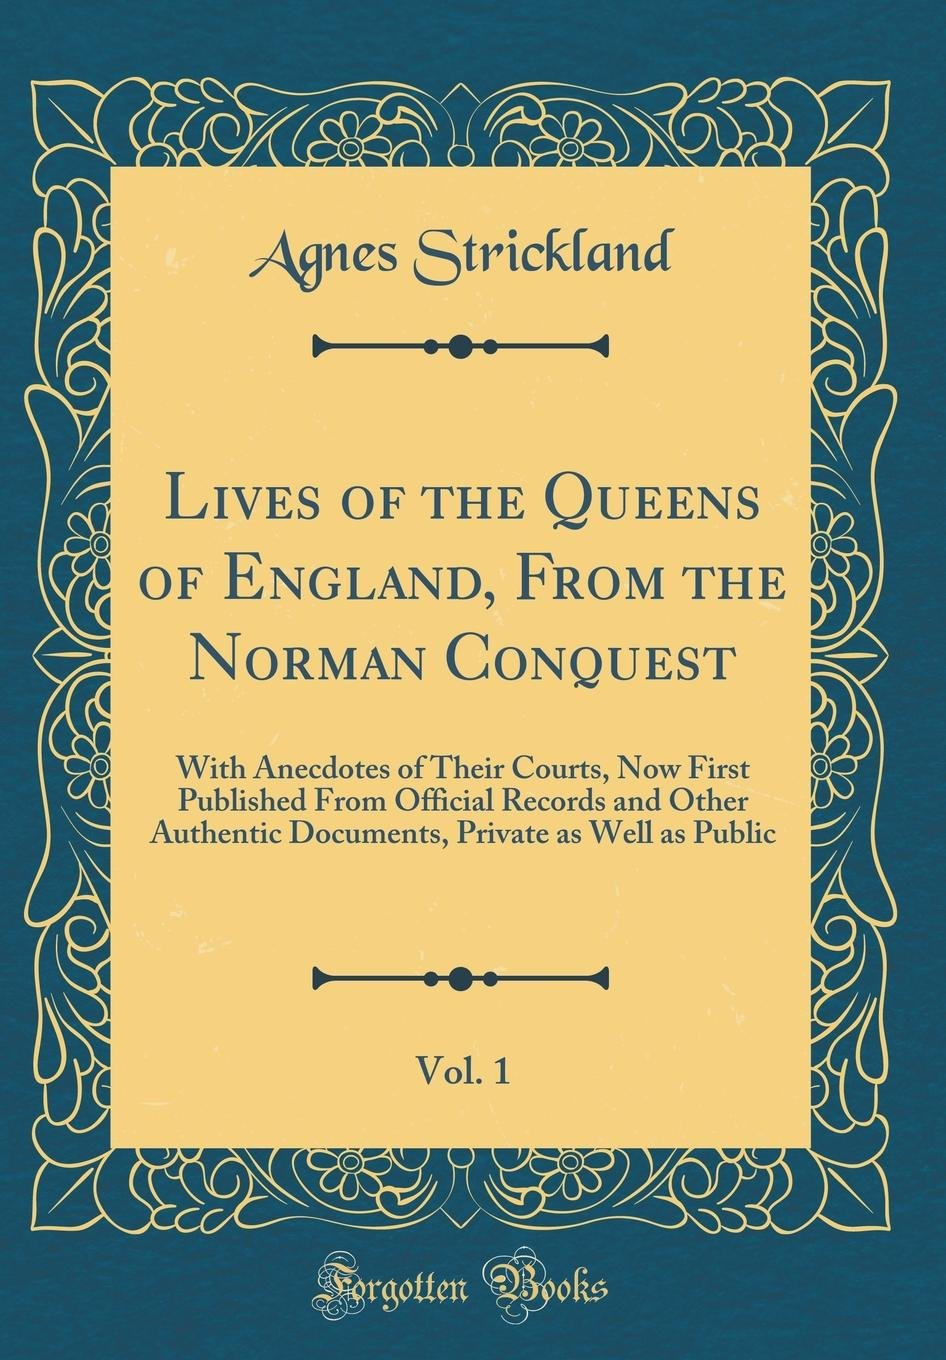 Lives of the Queens of England, From the Norman Conquest, Vol. 1: With Anecdotes of Their Courts, Now First Published From Official Records and Other Private as Well as Public (Classic Reprint) pdf epub